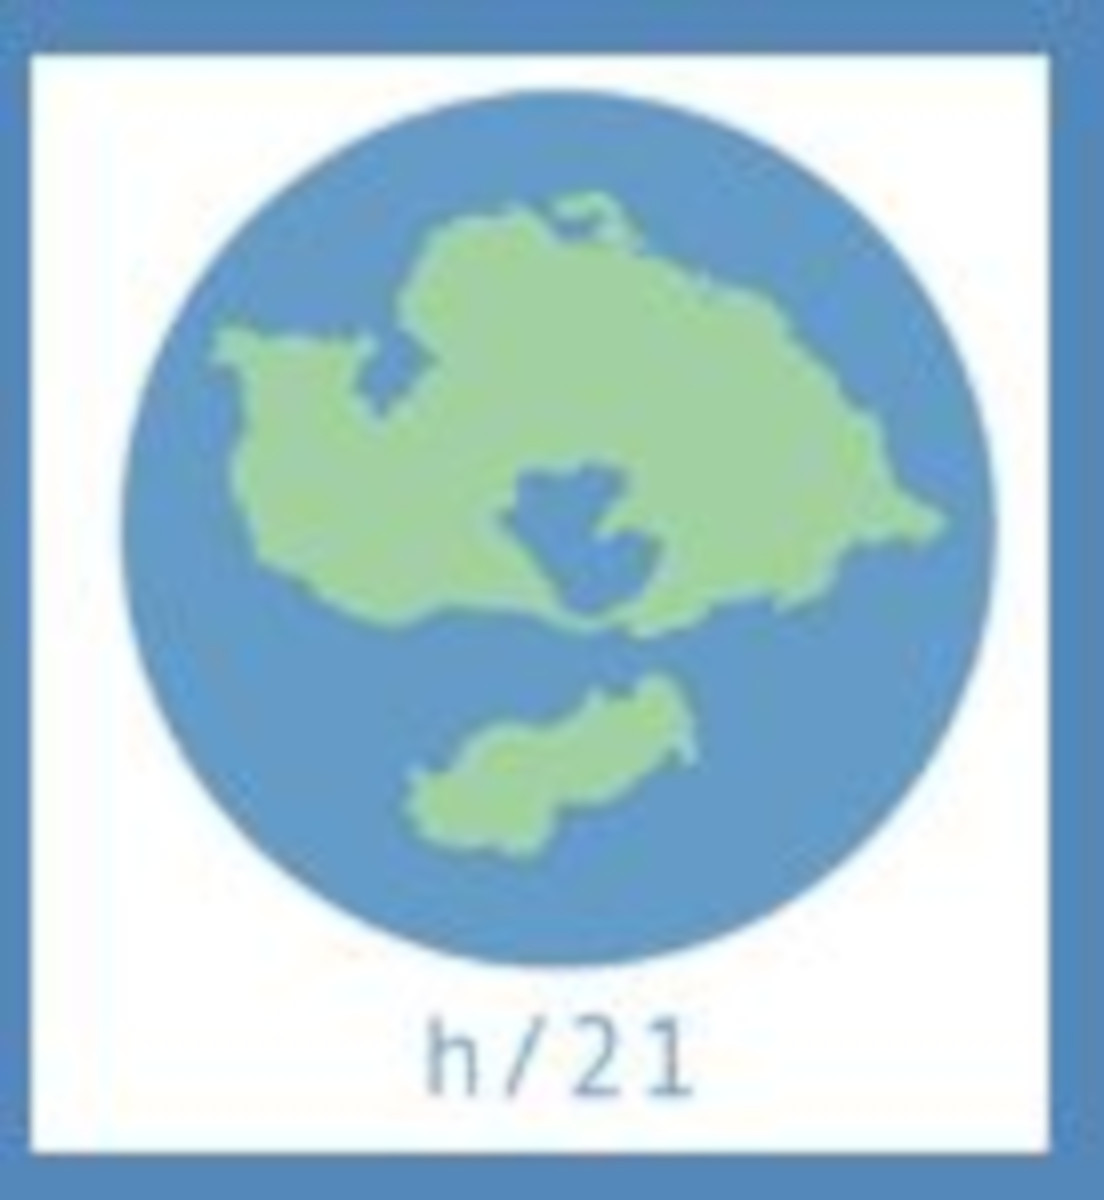 Blue circle with green landmass, showing an overhead view of the globe. It is captioned h/21.